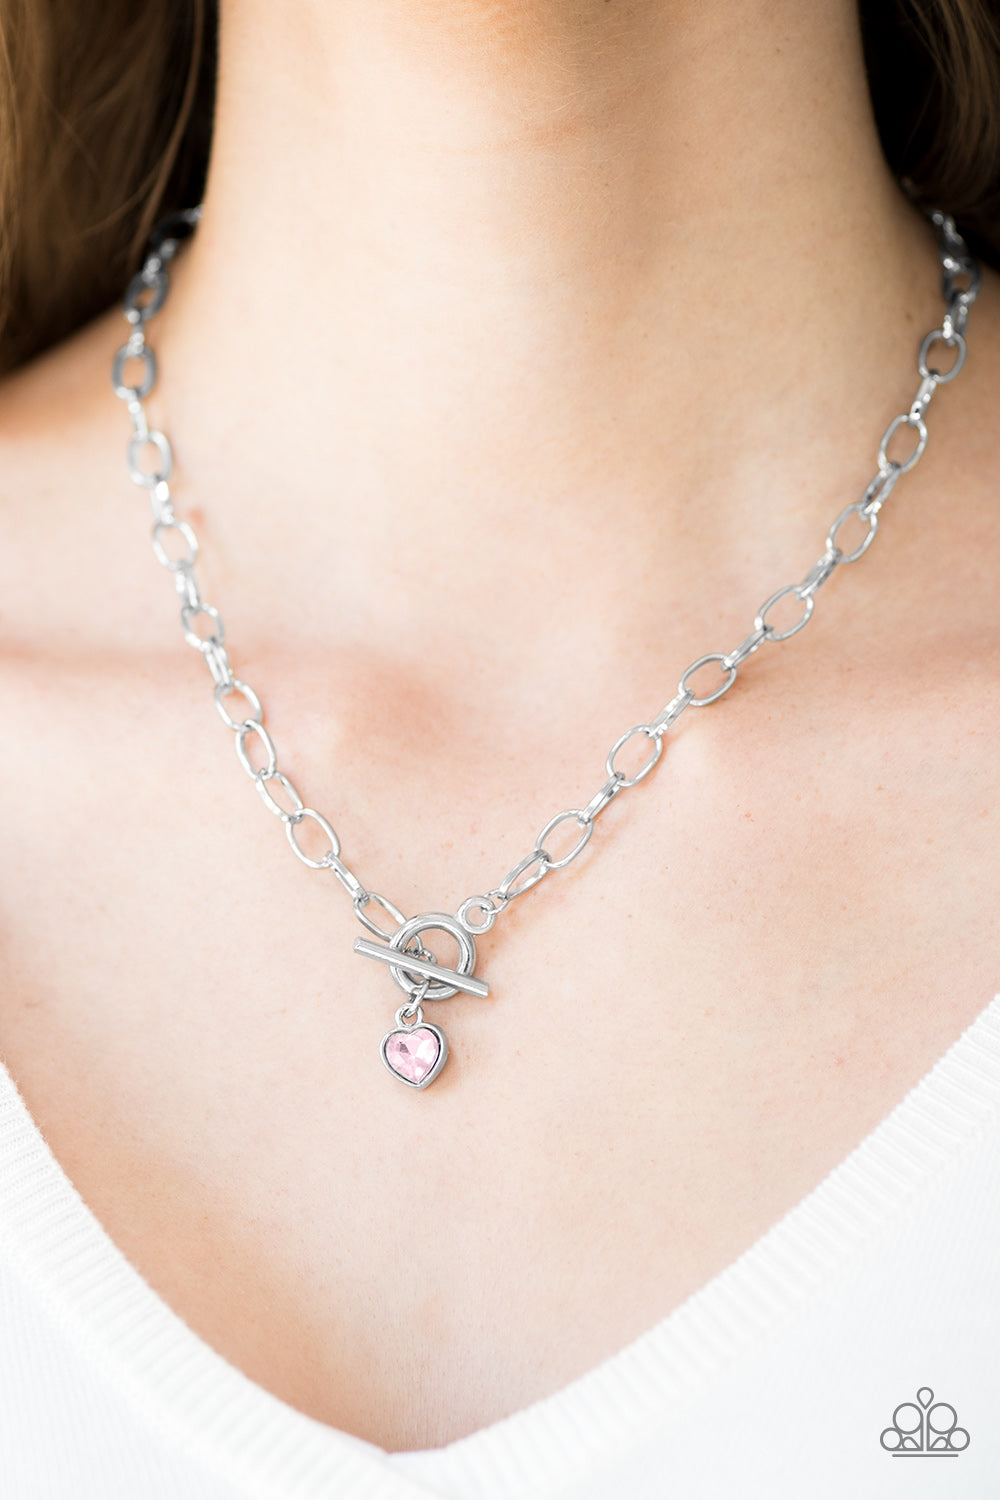 Paparazzi Accessories Let Your Heart Shine - Pink Necklaces - Lady T Accessories